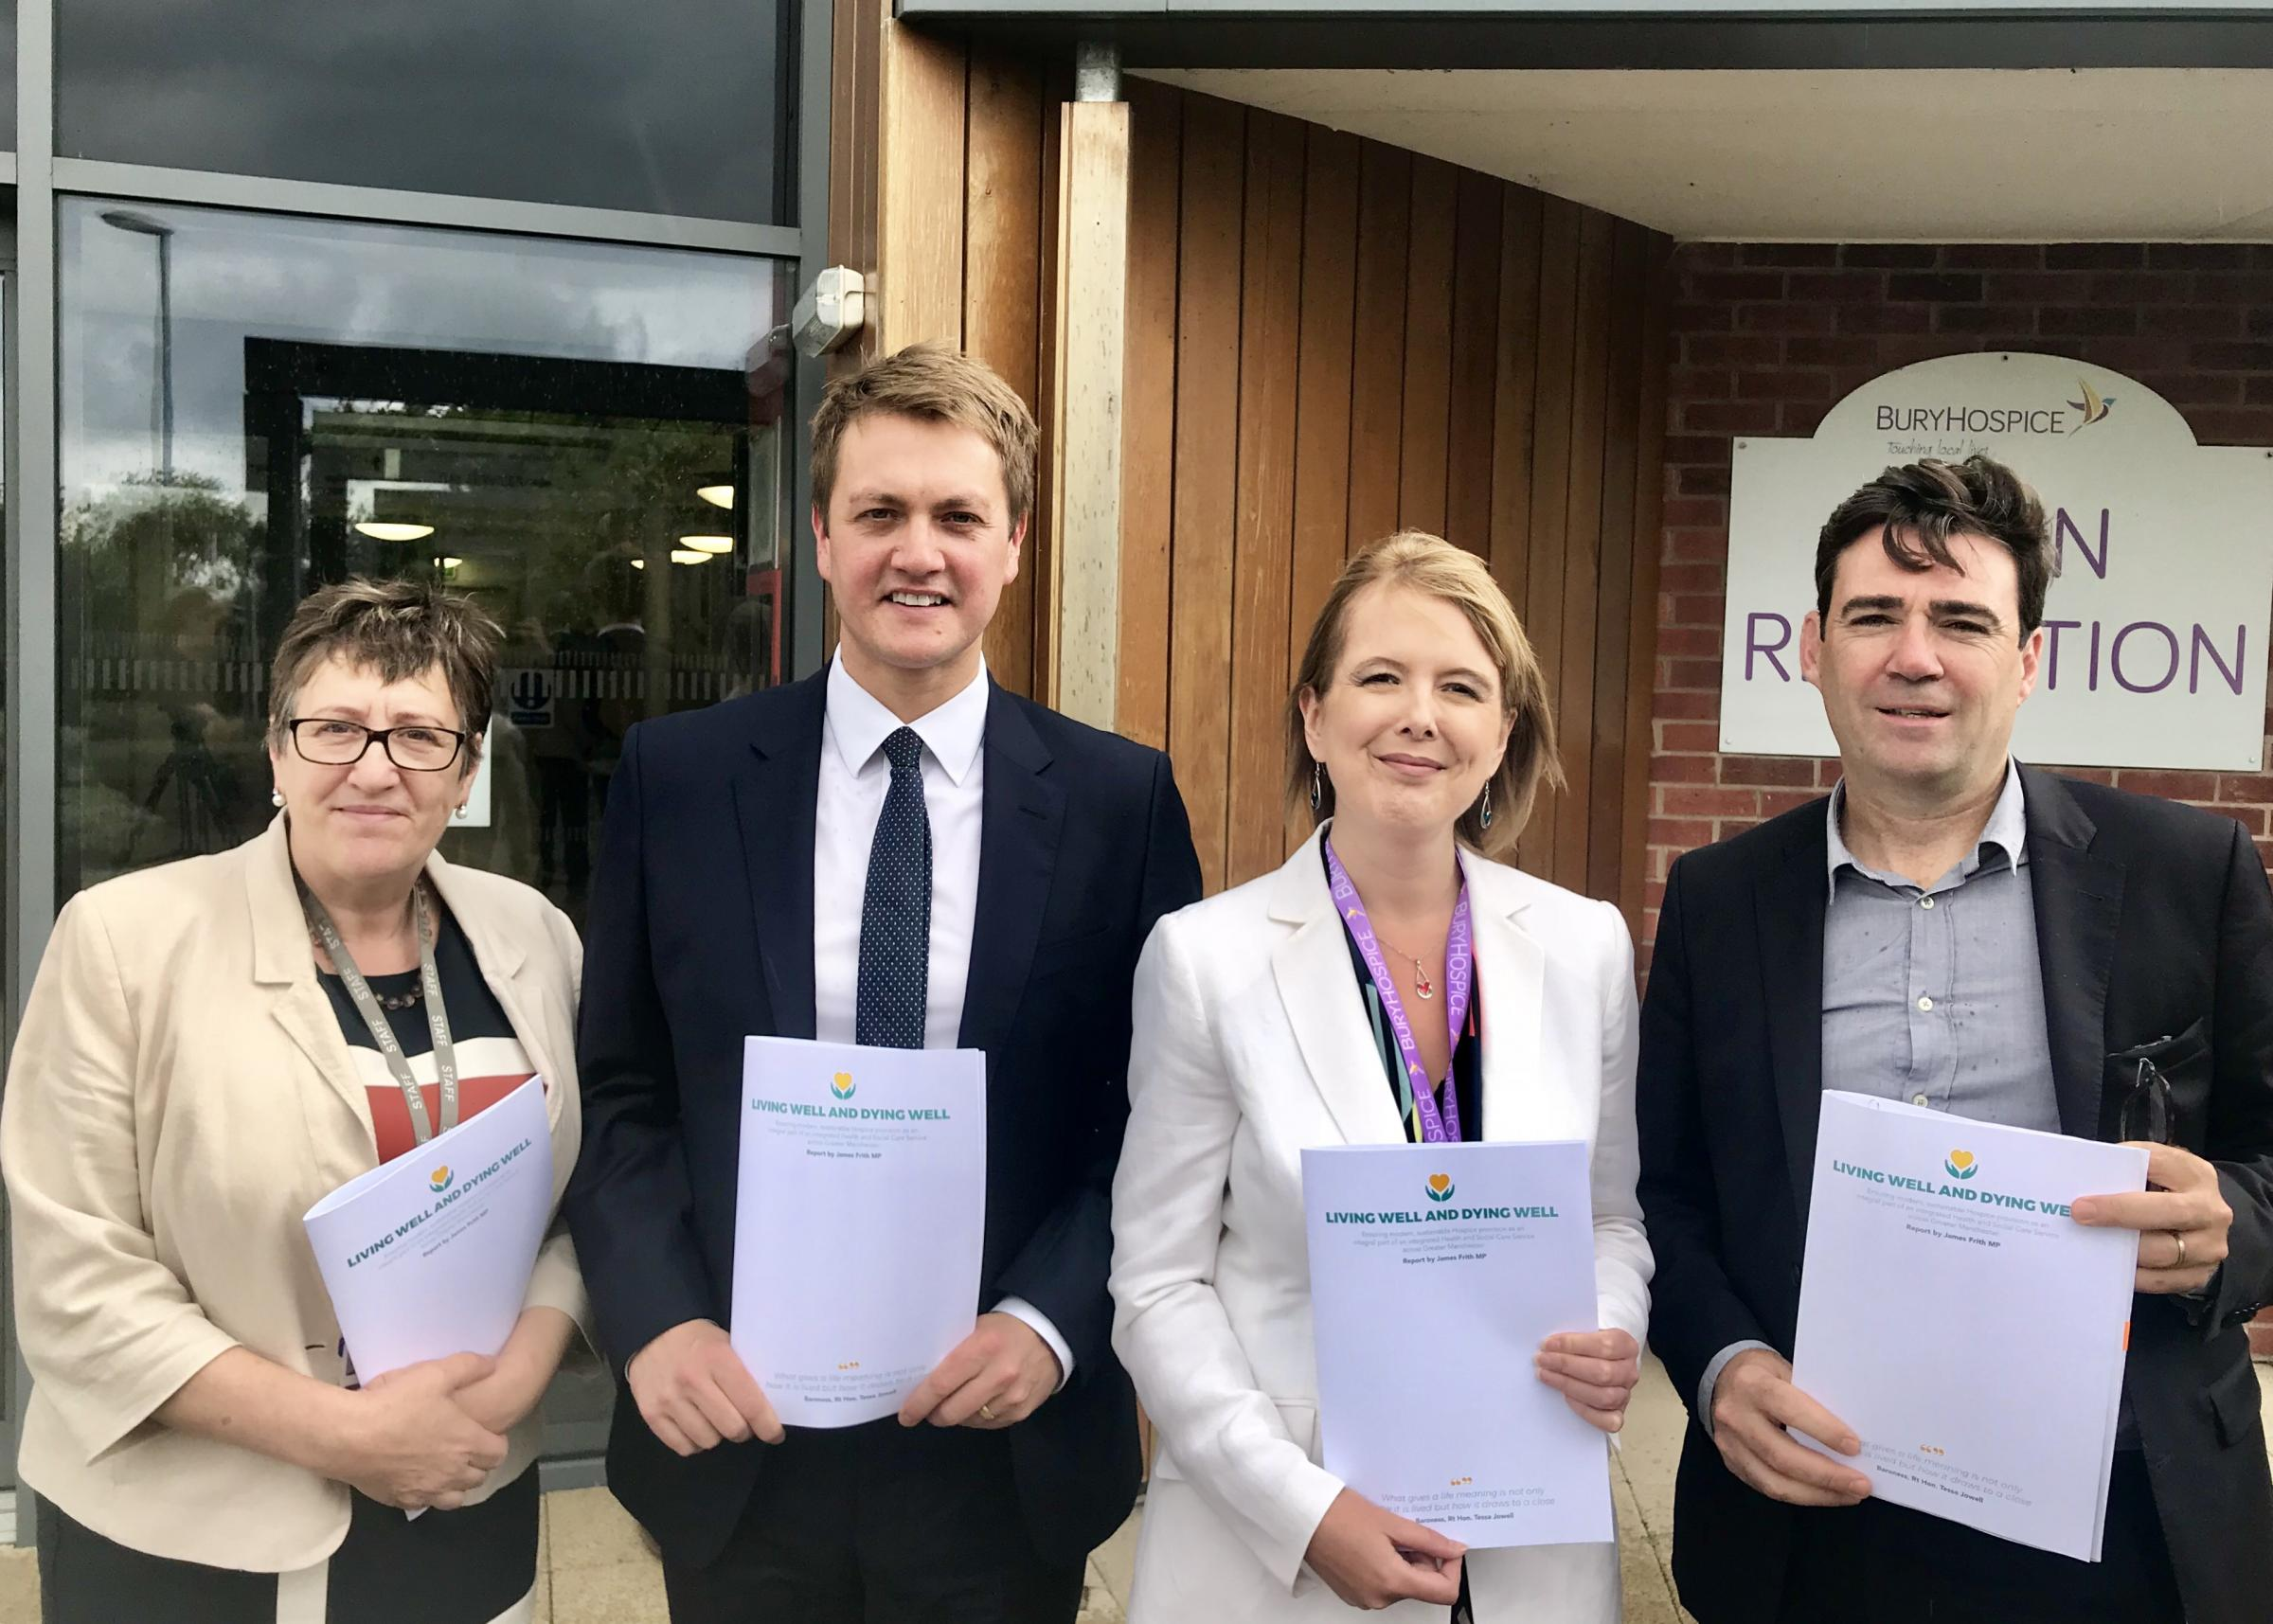 Dr Leigh Vallance, Chair of GM Hospice Group; James Frith, MP for Bury North; Tracey Bleakley, Chief Executive of Hospice UK; Andy Burnham, Mayor of Greater Manchester.